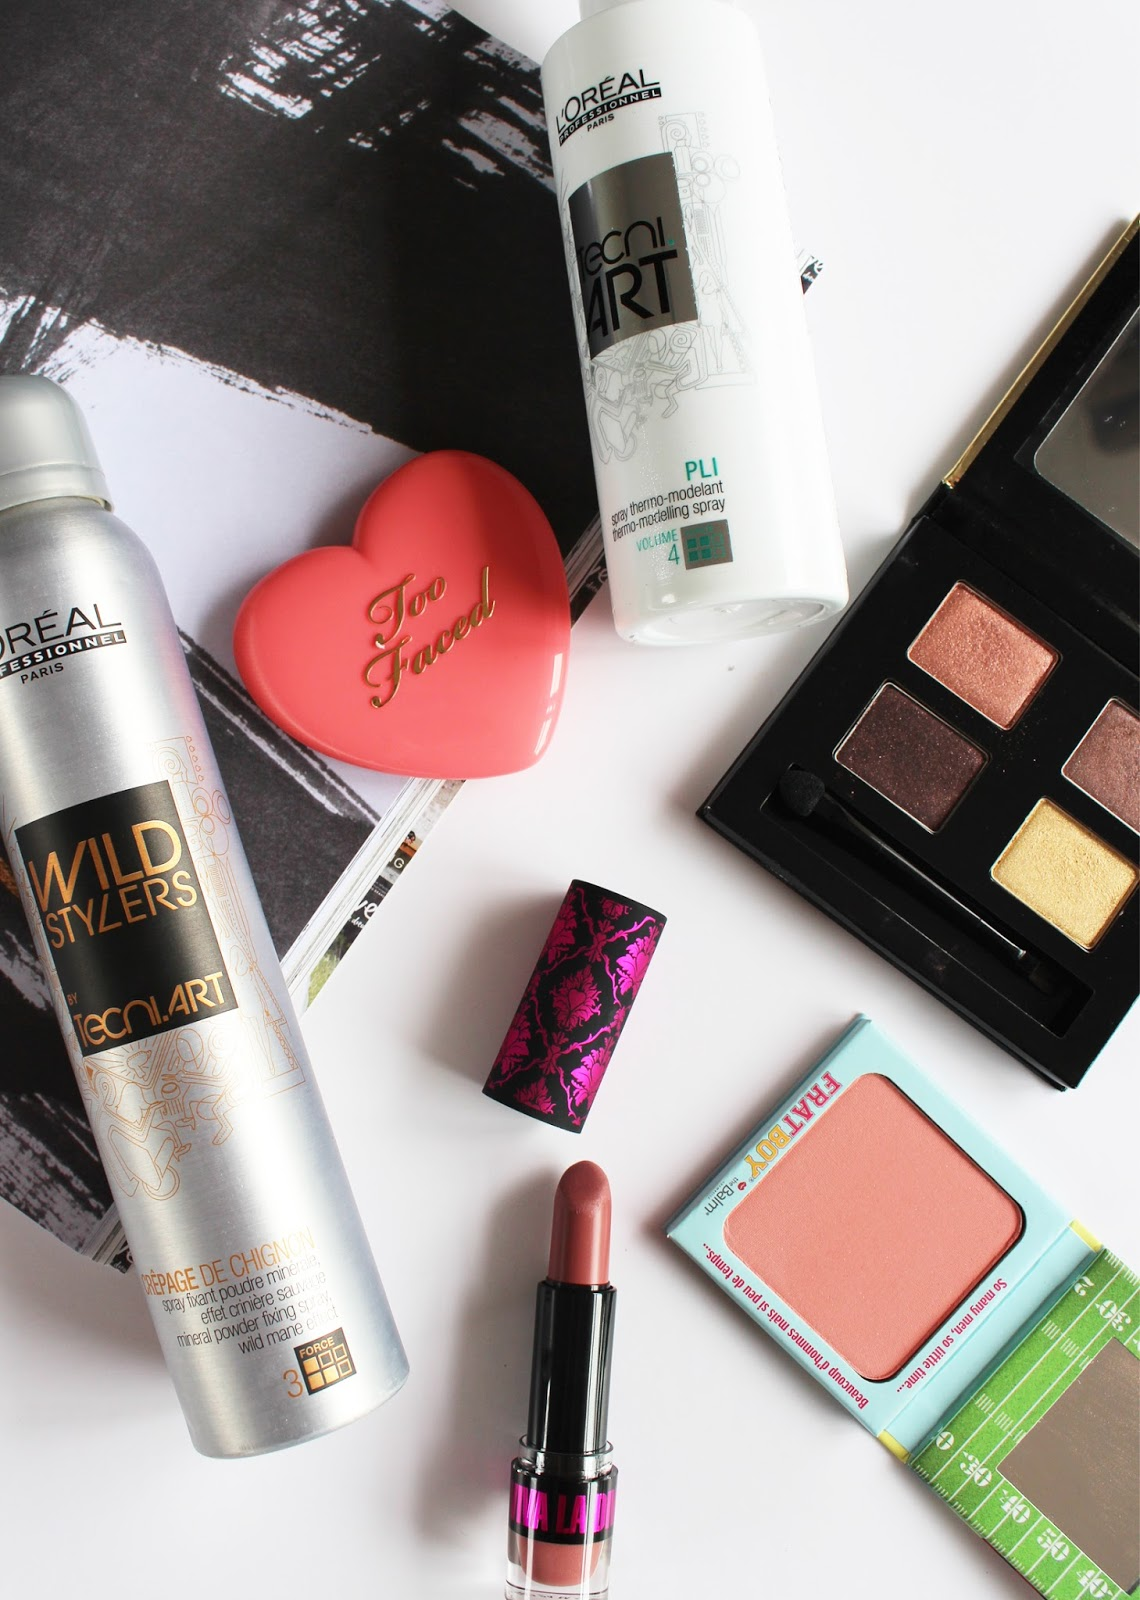 MOST LOVED | NOVEMBER '15 - L'Oreal Professionnel Paris, The Body Shop, The Balm, Too Faced, Chi Chi - CassandraMyee